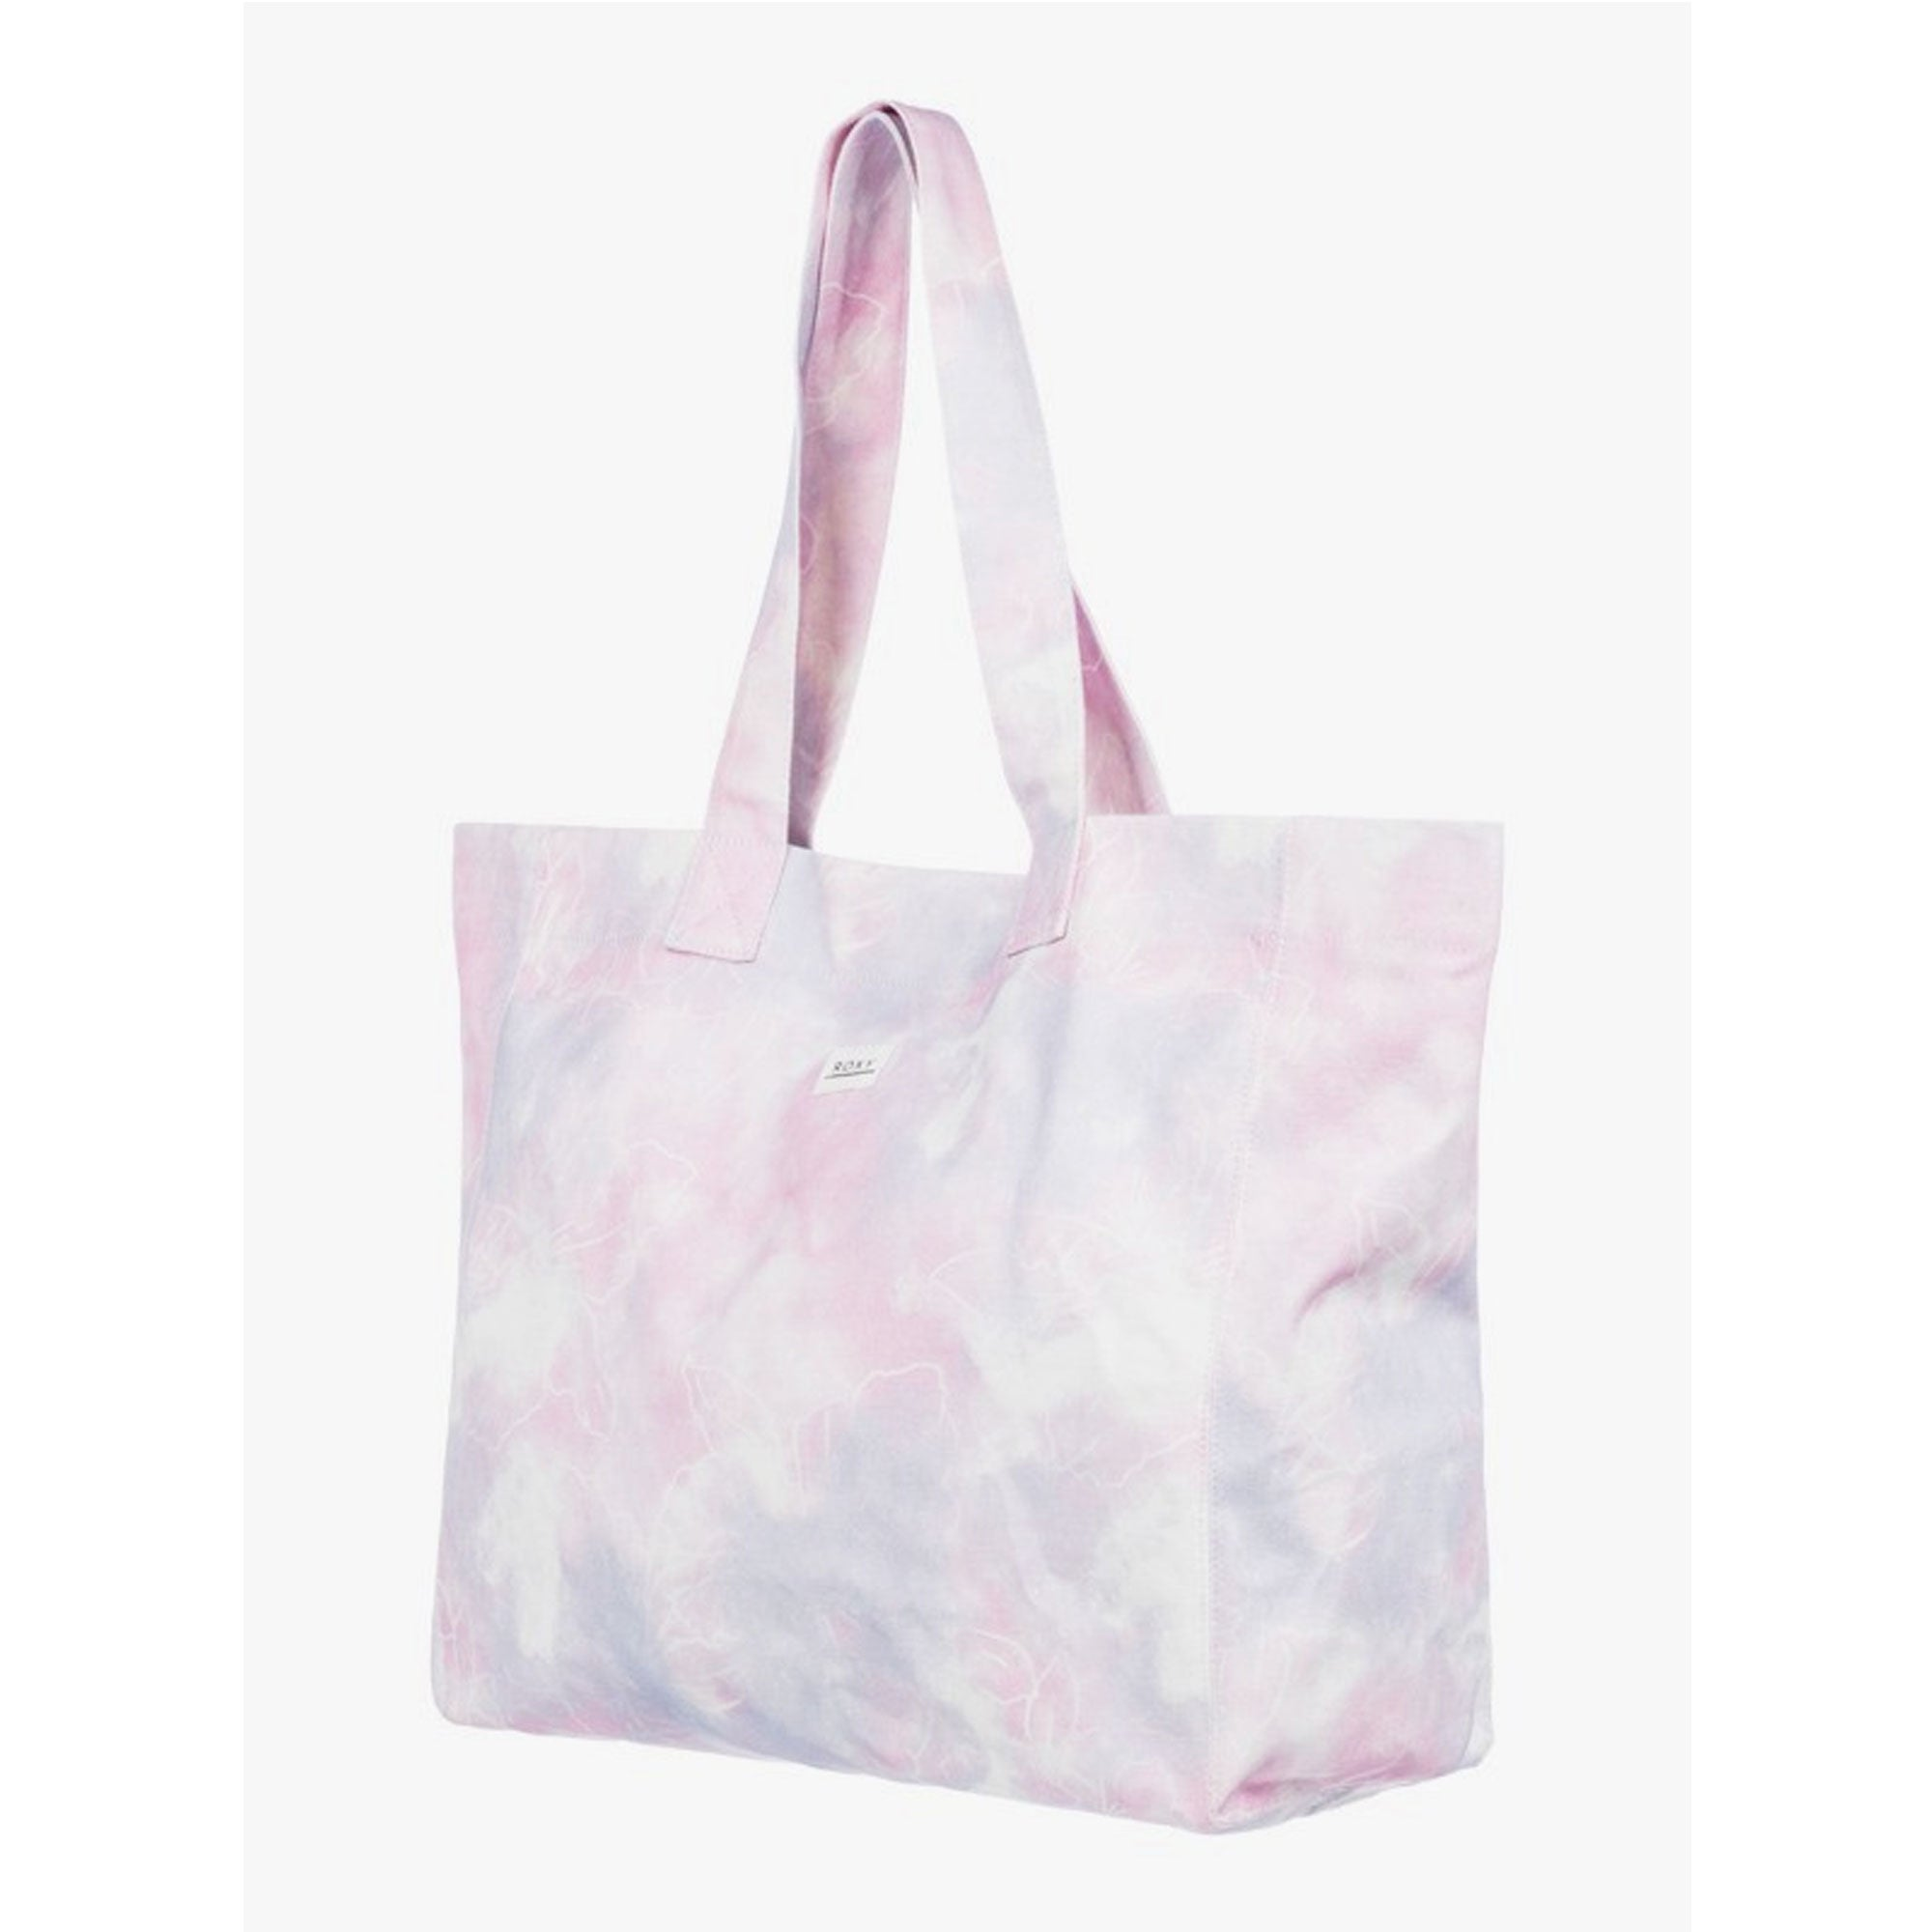 Roxy Anti Bad Vibes 24L Tote